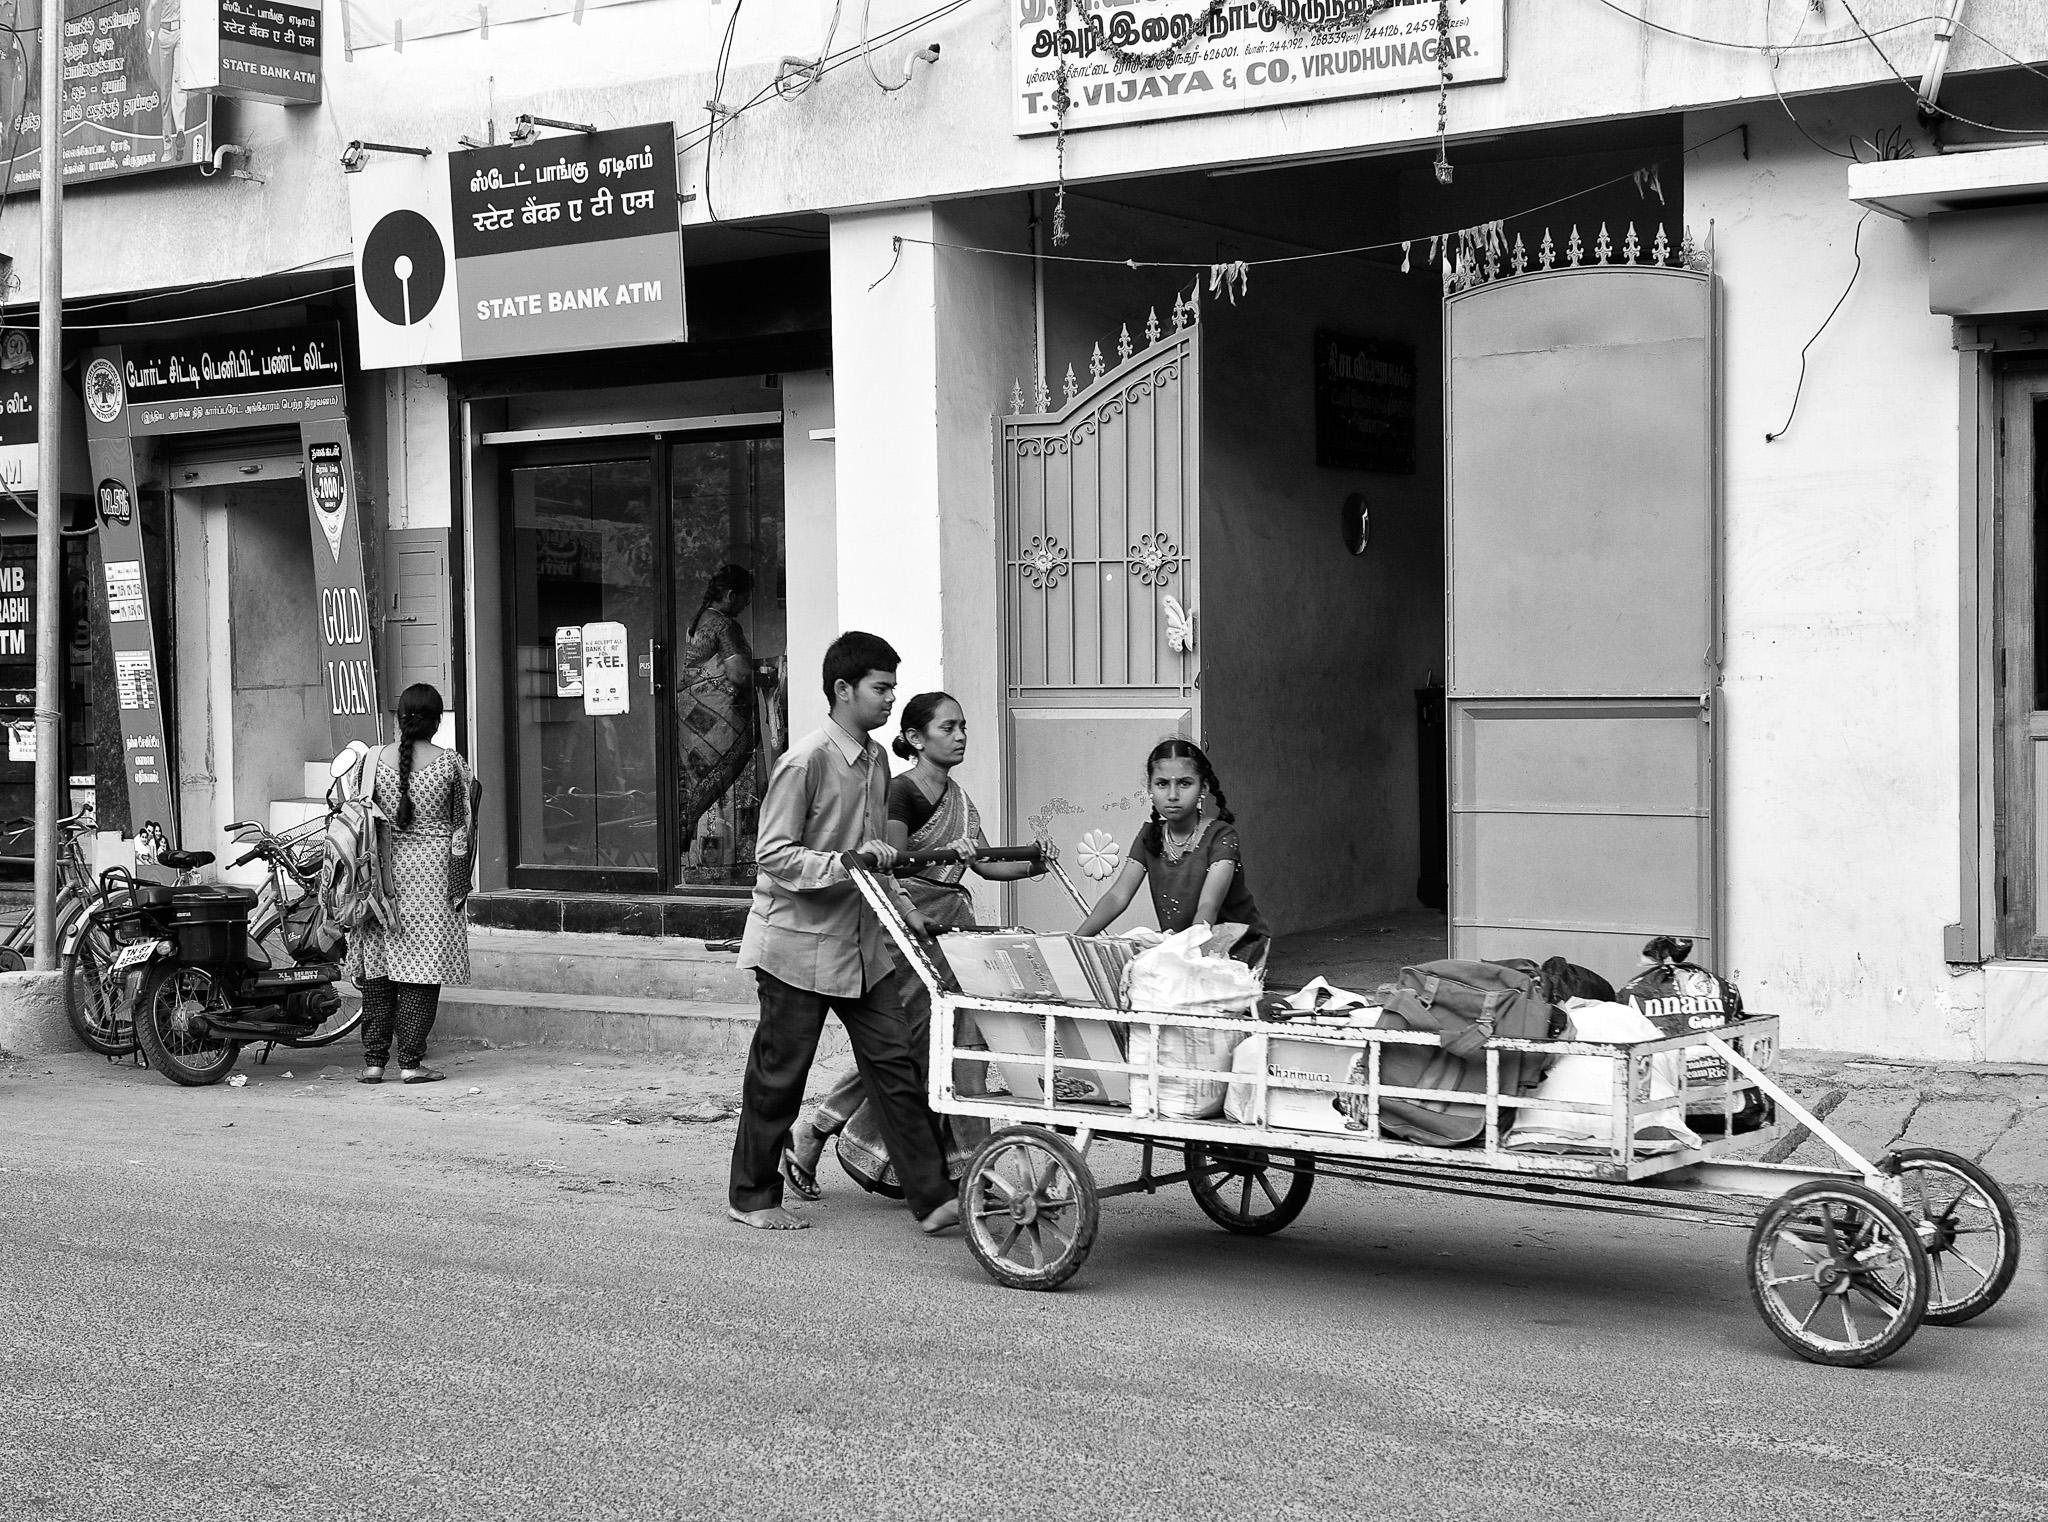 A family moving their goods in a push cart, Virudhunagar, Tamil Nadu, India